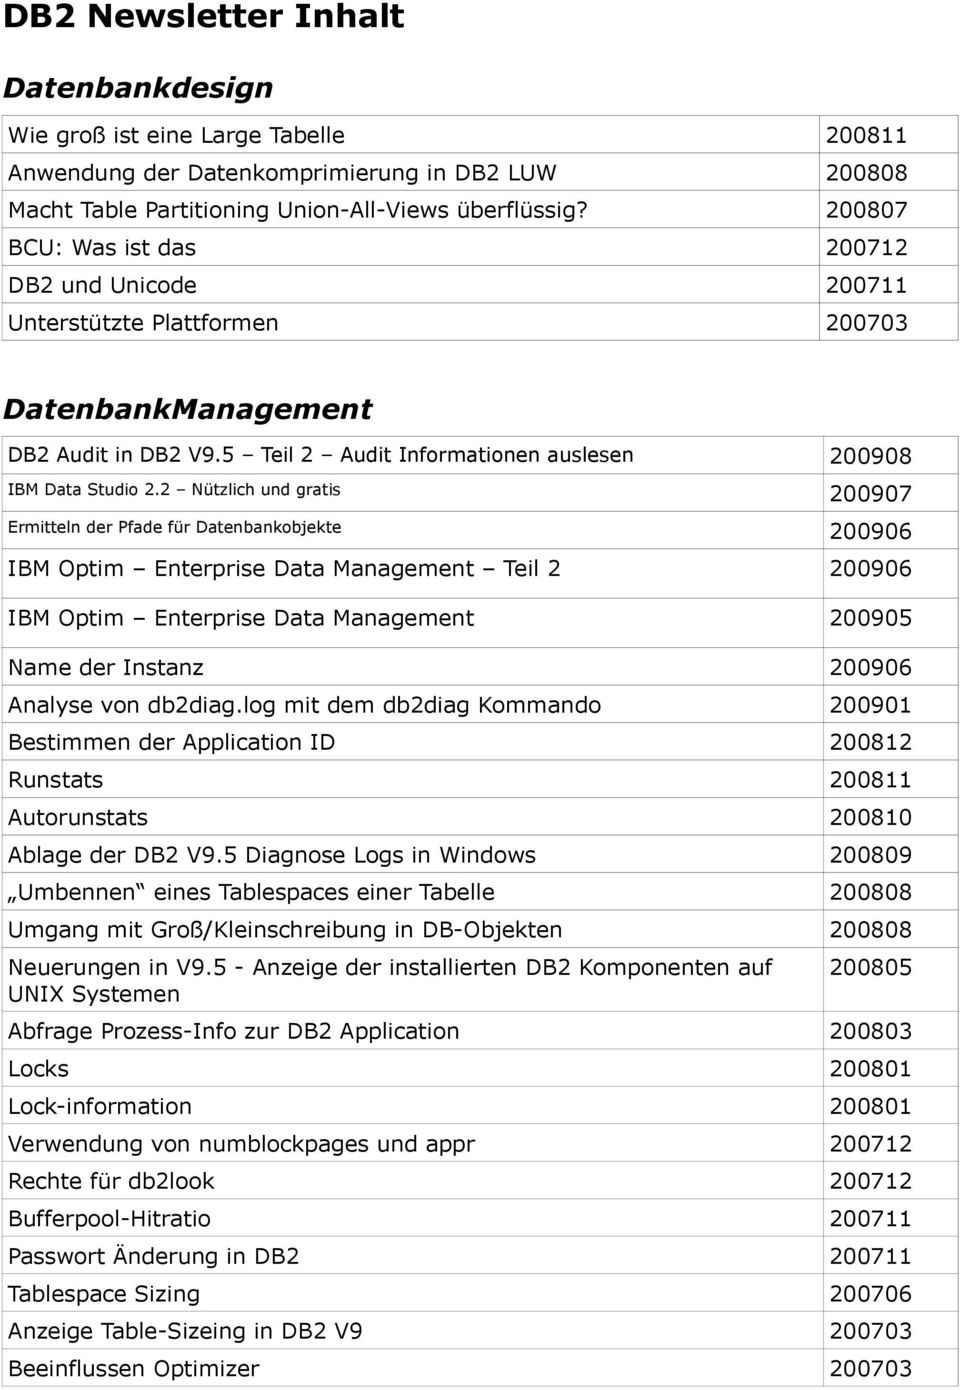 2 Nützlich und gratis 200907 Ermitteln der Pfade für Datenbankobjekte 200906 IBM Optim Enterprise Data Management Teil 2 200906 IBM Optim Enterprise Data Management 200905 Name der Instanz 200906